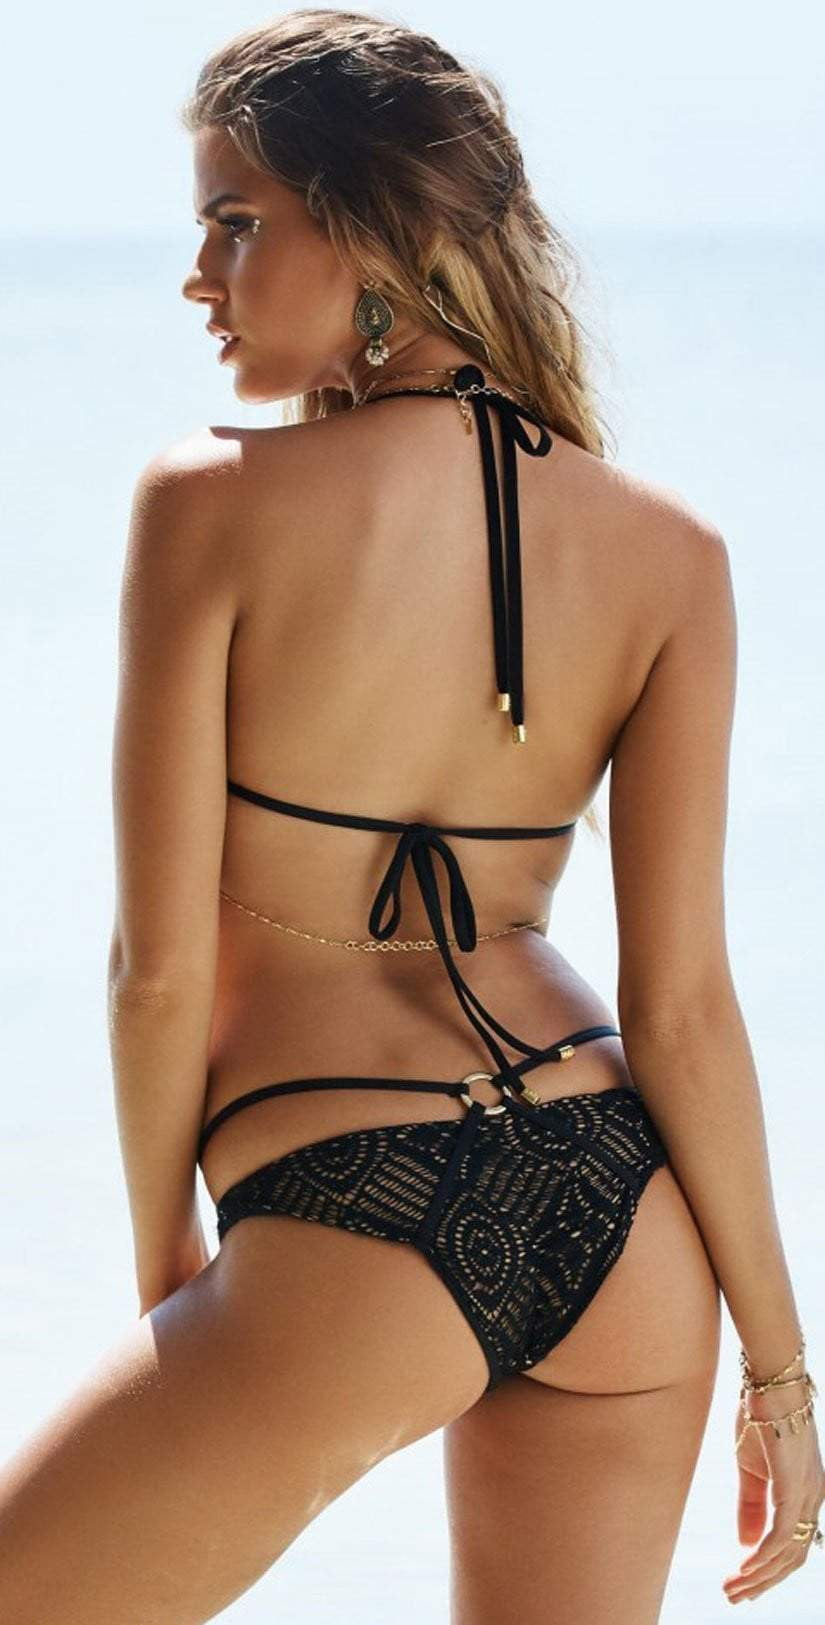 Beach Bunny Love Me Like You Do Skimpy Bottom In Black B17113B1-BLCK: